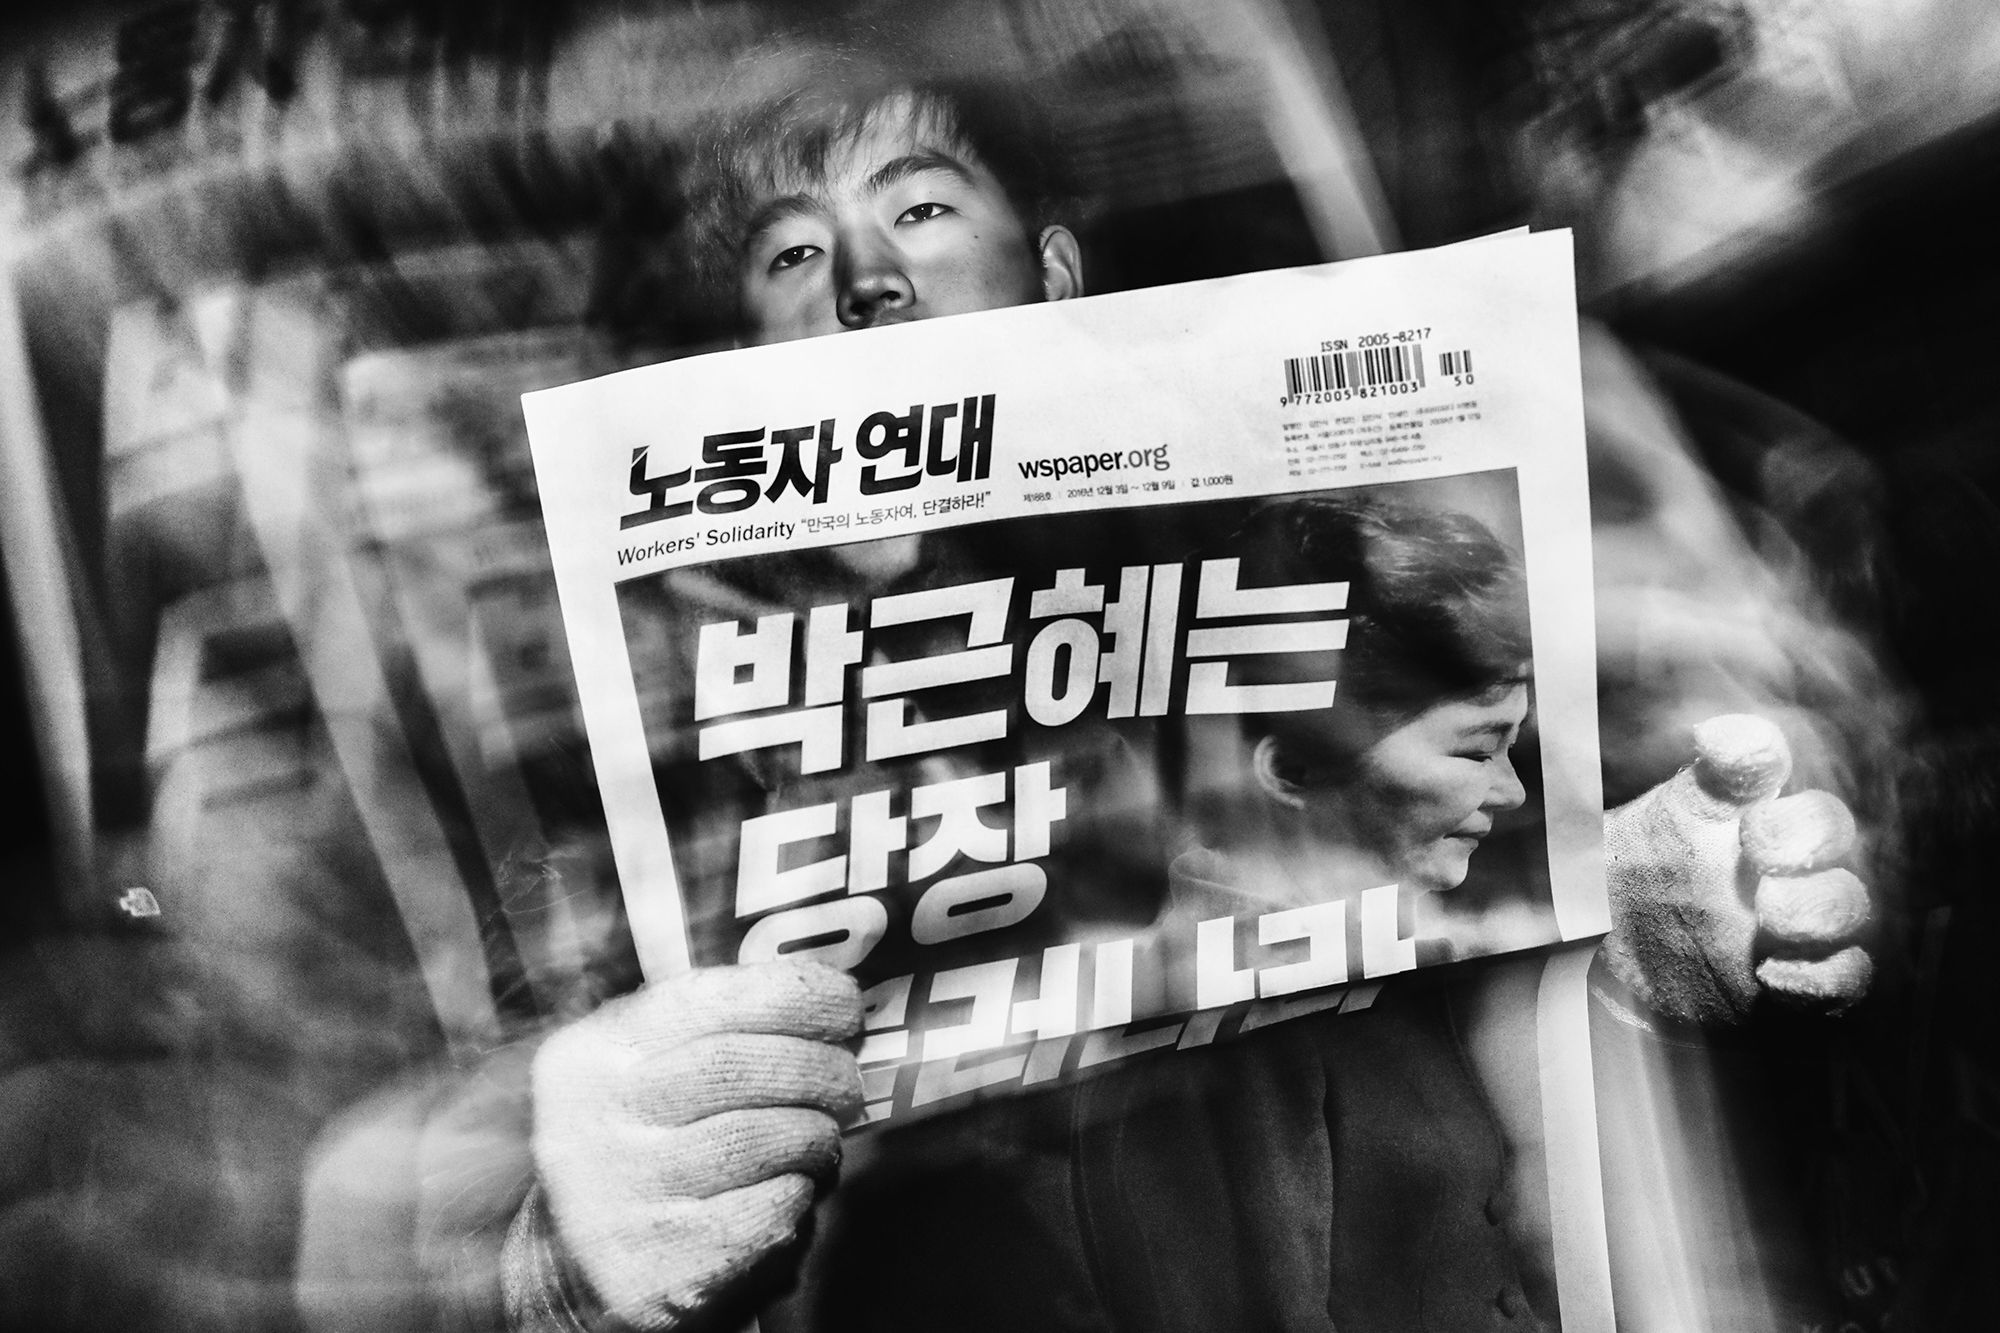 Losing Face: Inside the Fall of South Korea's President